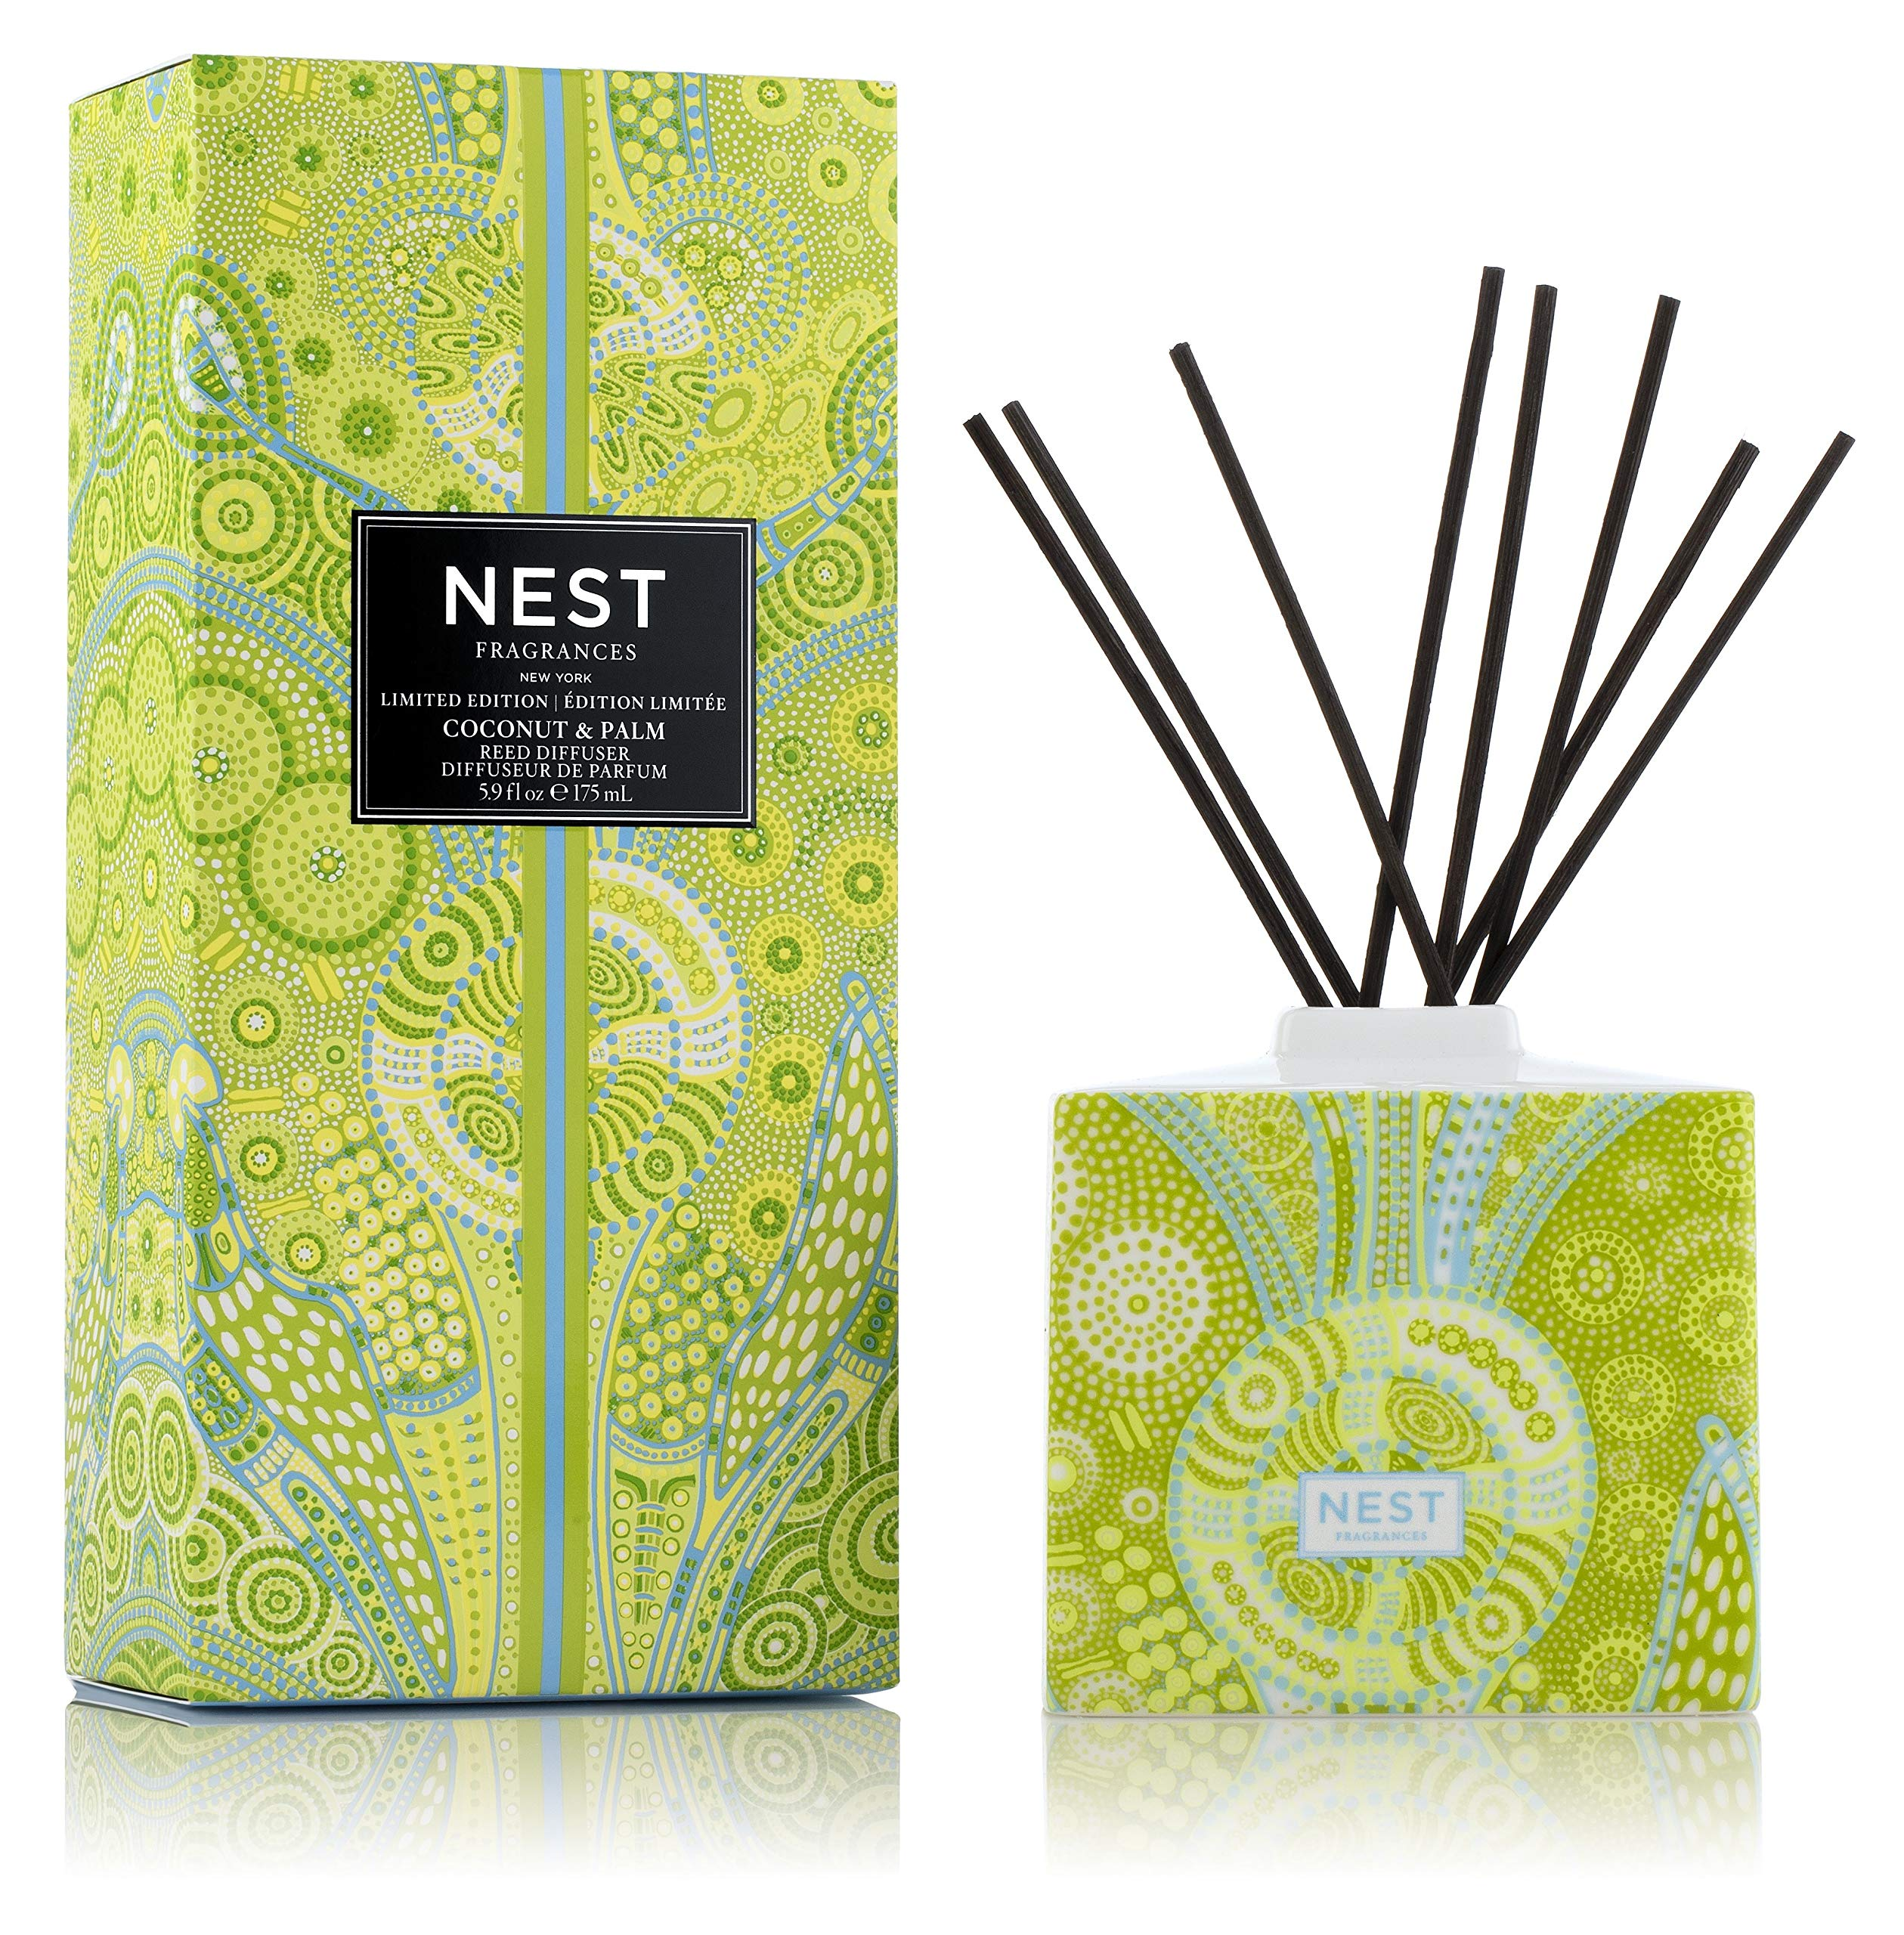 NEST Fragrances Coconut & Palm Limited Edition Summer 'Scape Reed Diffuser by NEST Fragrances (Image #1)